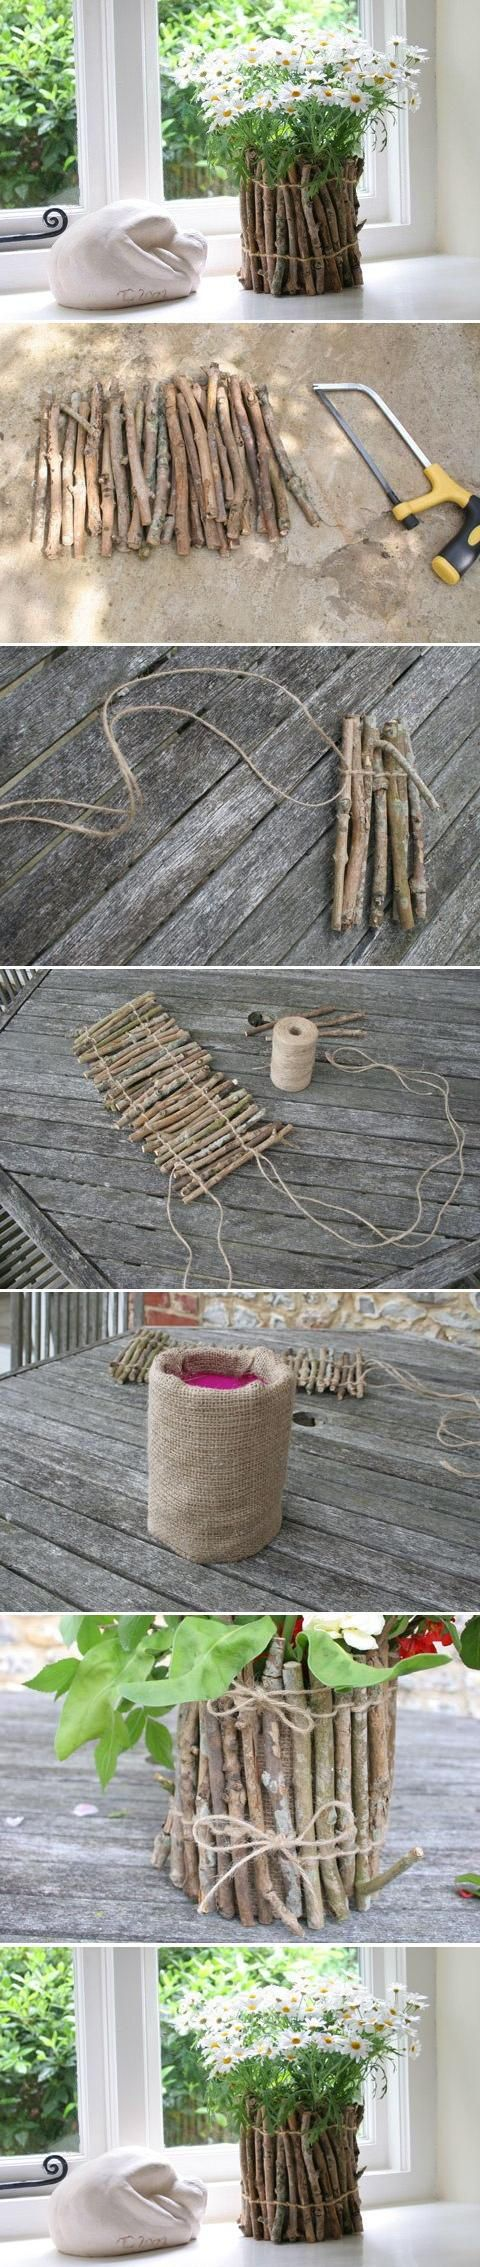 DIY Tree Branches Flower Pot DIY Projects | UsefulDIY.com